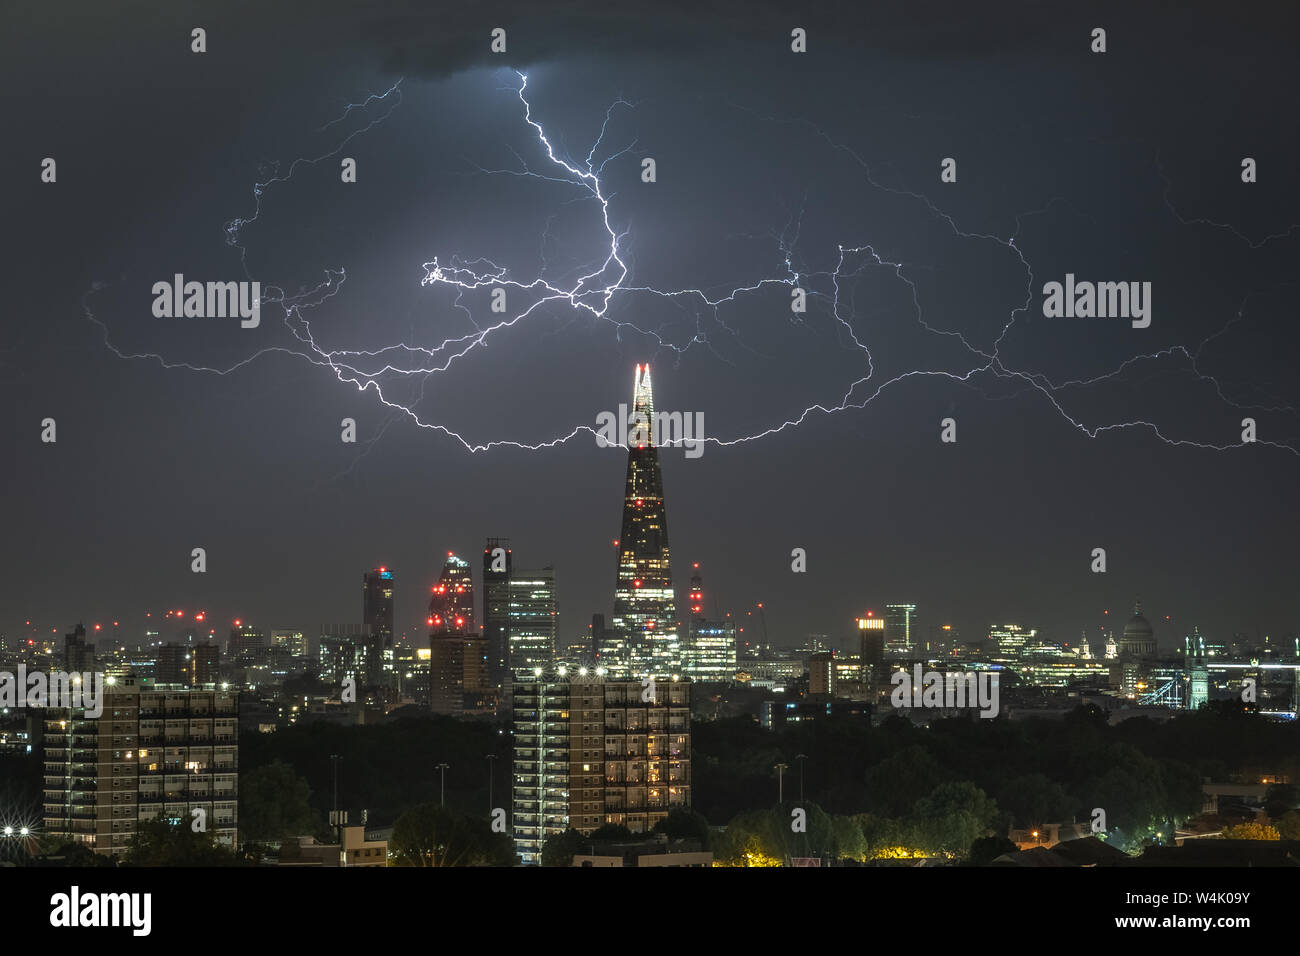 London, UK. 24th July, 2019. UK Weather: Dramatic multiple lightning strikes over The Shard skyscraper building in the early hours of Wednesday. Credit: Guy Corbishley/Alamy Live News Stock Photo